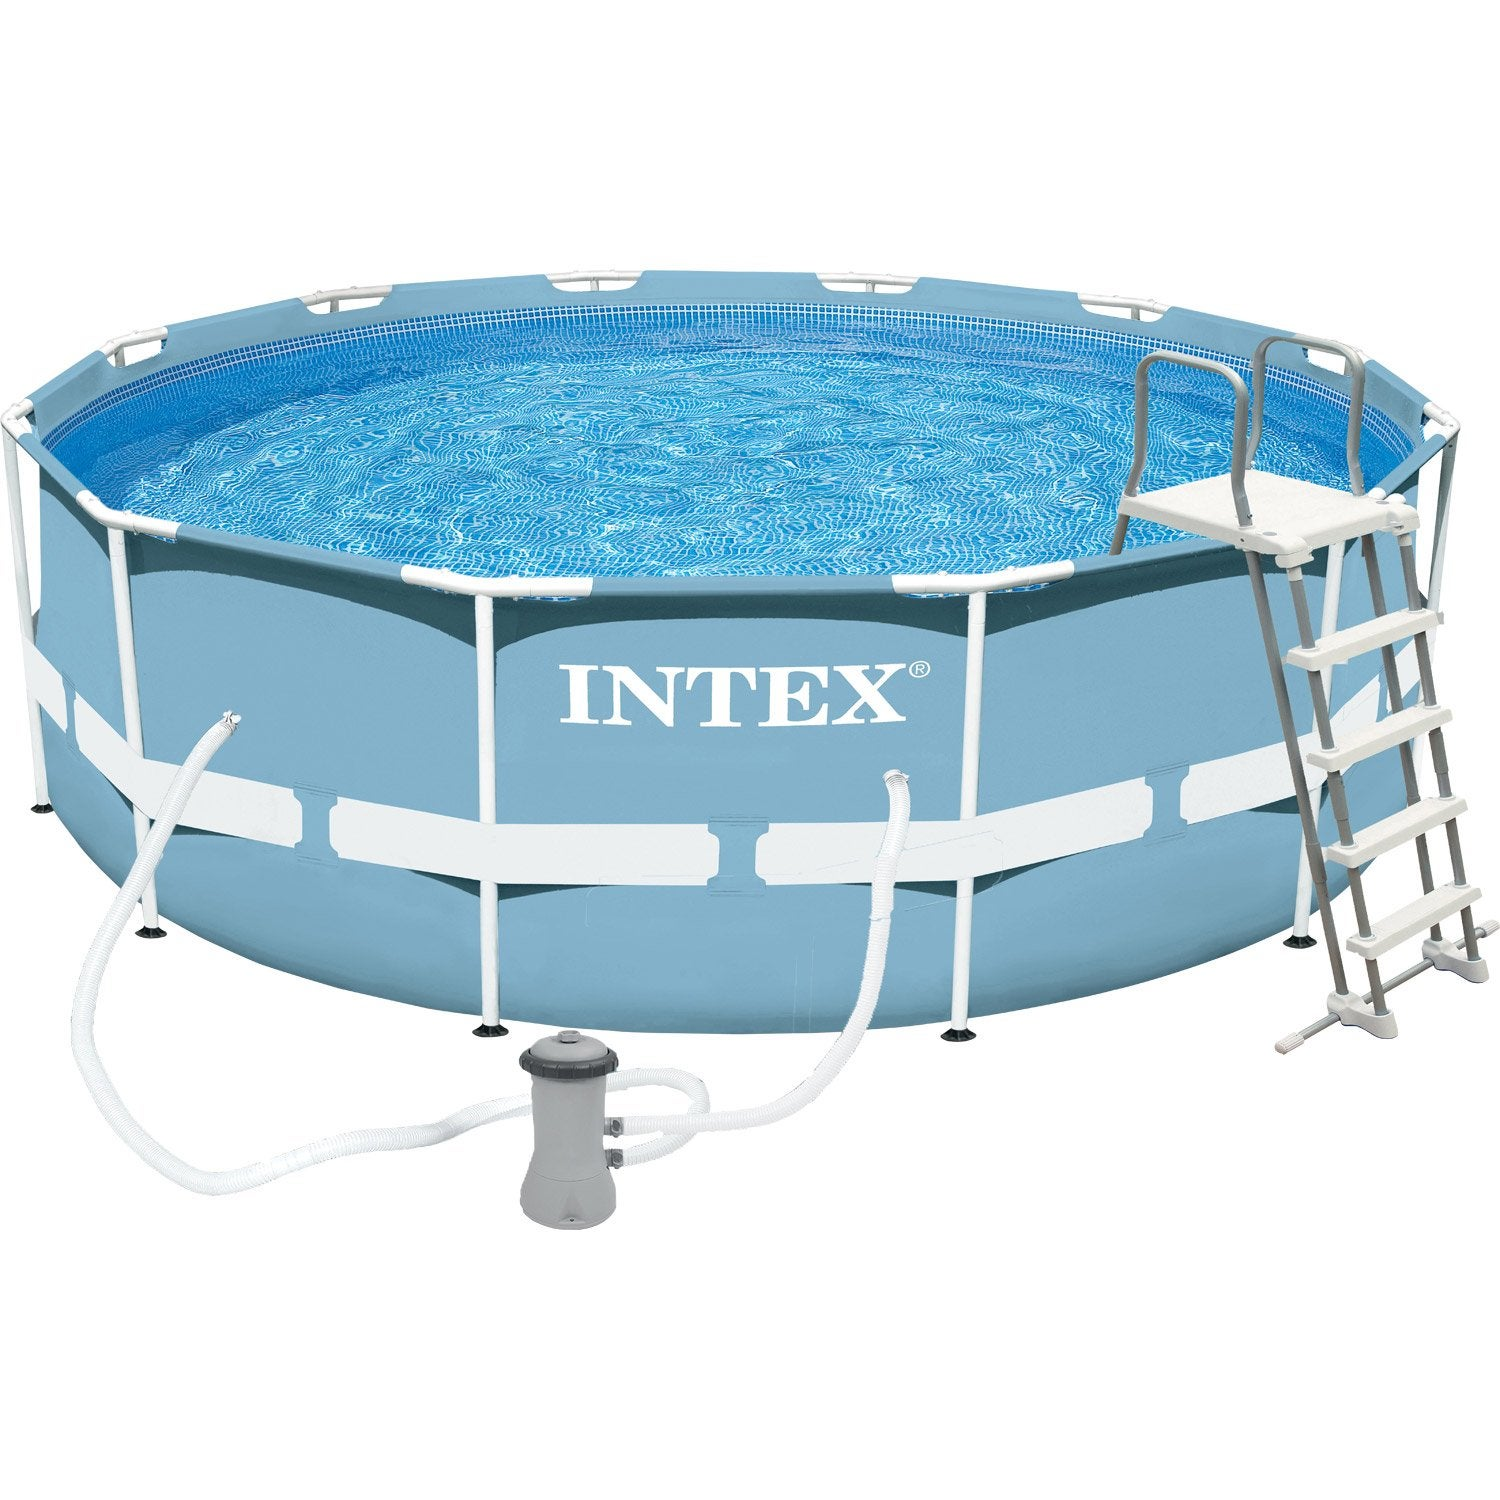 Piscine hors sol autoportante tubulaire prism frame intex for Piscine hors sol tubulaire amazon